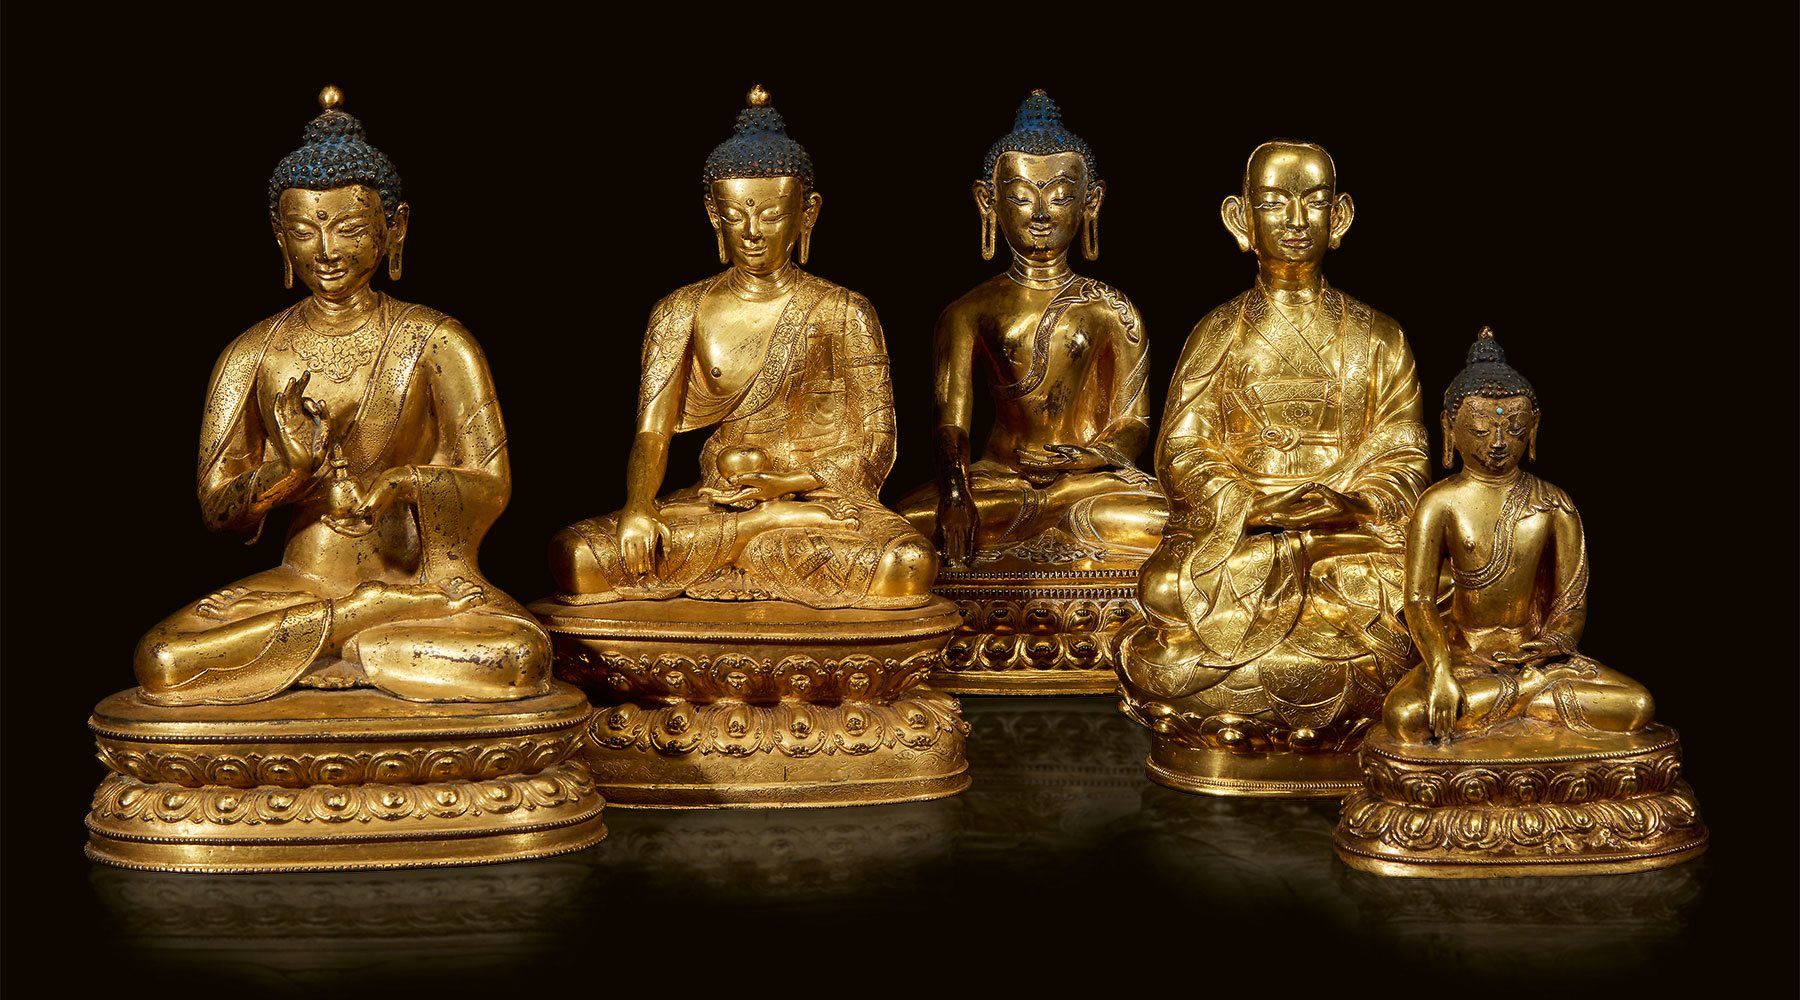 A group of gilt buddhas from The Collection of Ambassador and Mrs. Alexander Weddell - The Virginia House Museum